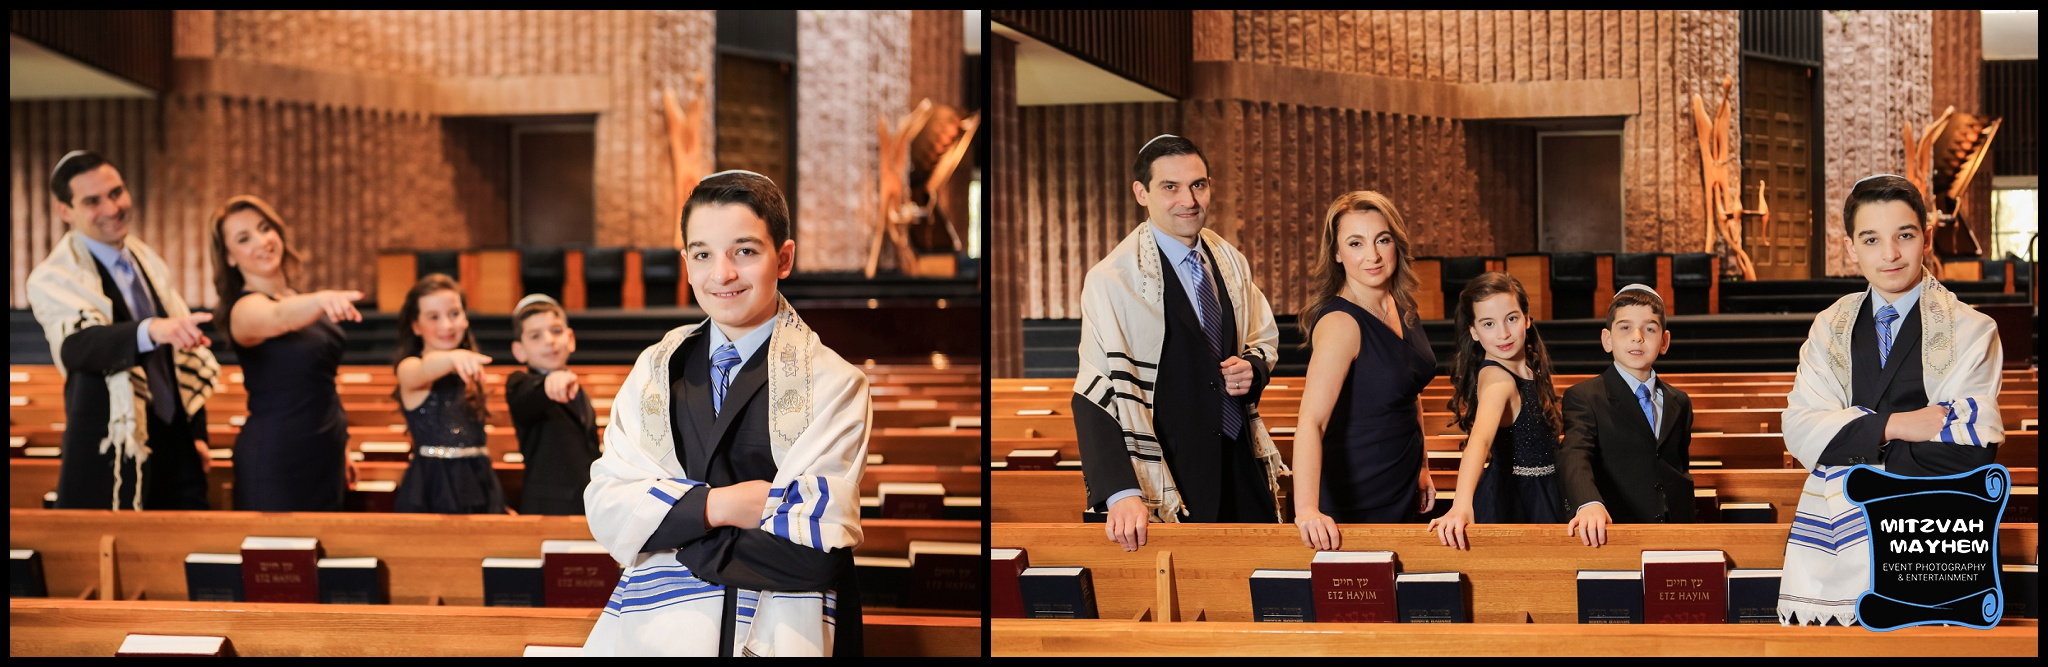 nj--bar-mitzvah-photographer-temple-bnai-abraham-logan-escapology-3.JPG